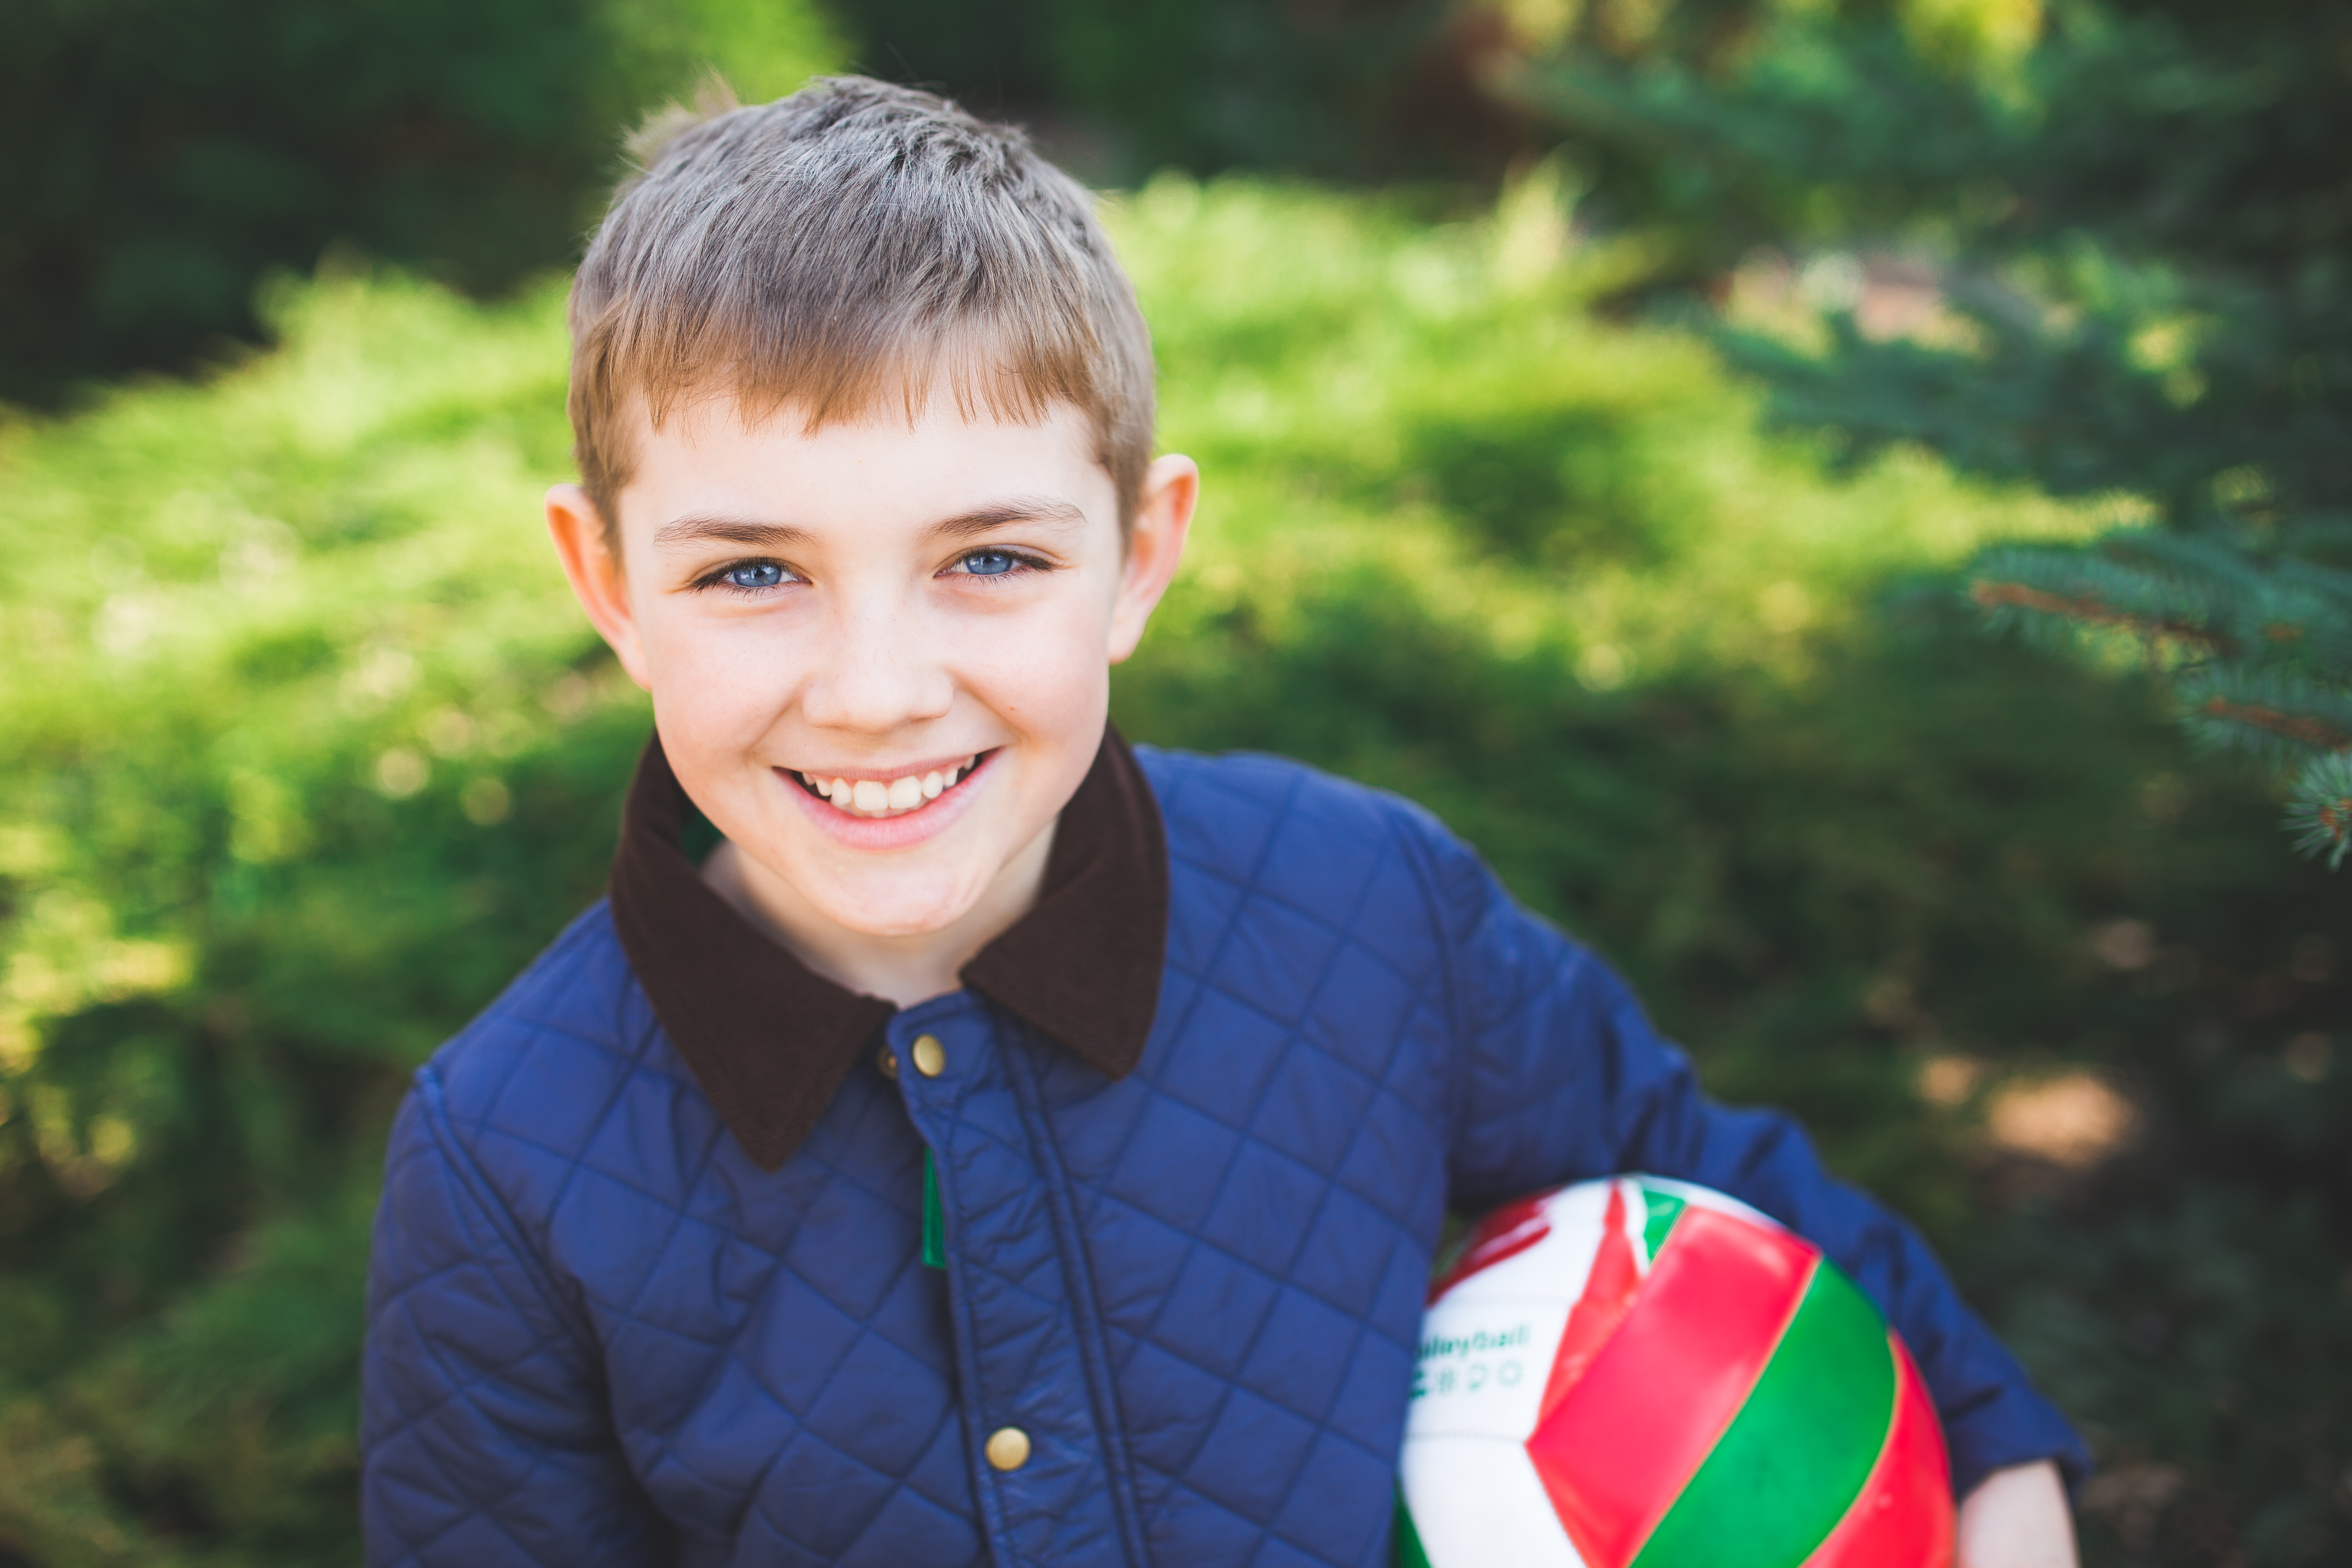 Boy smiling with ball